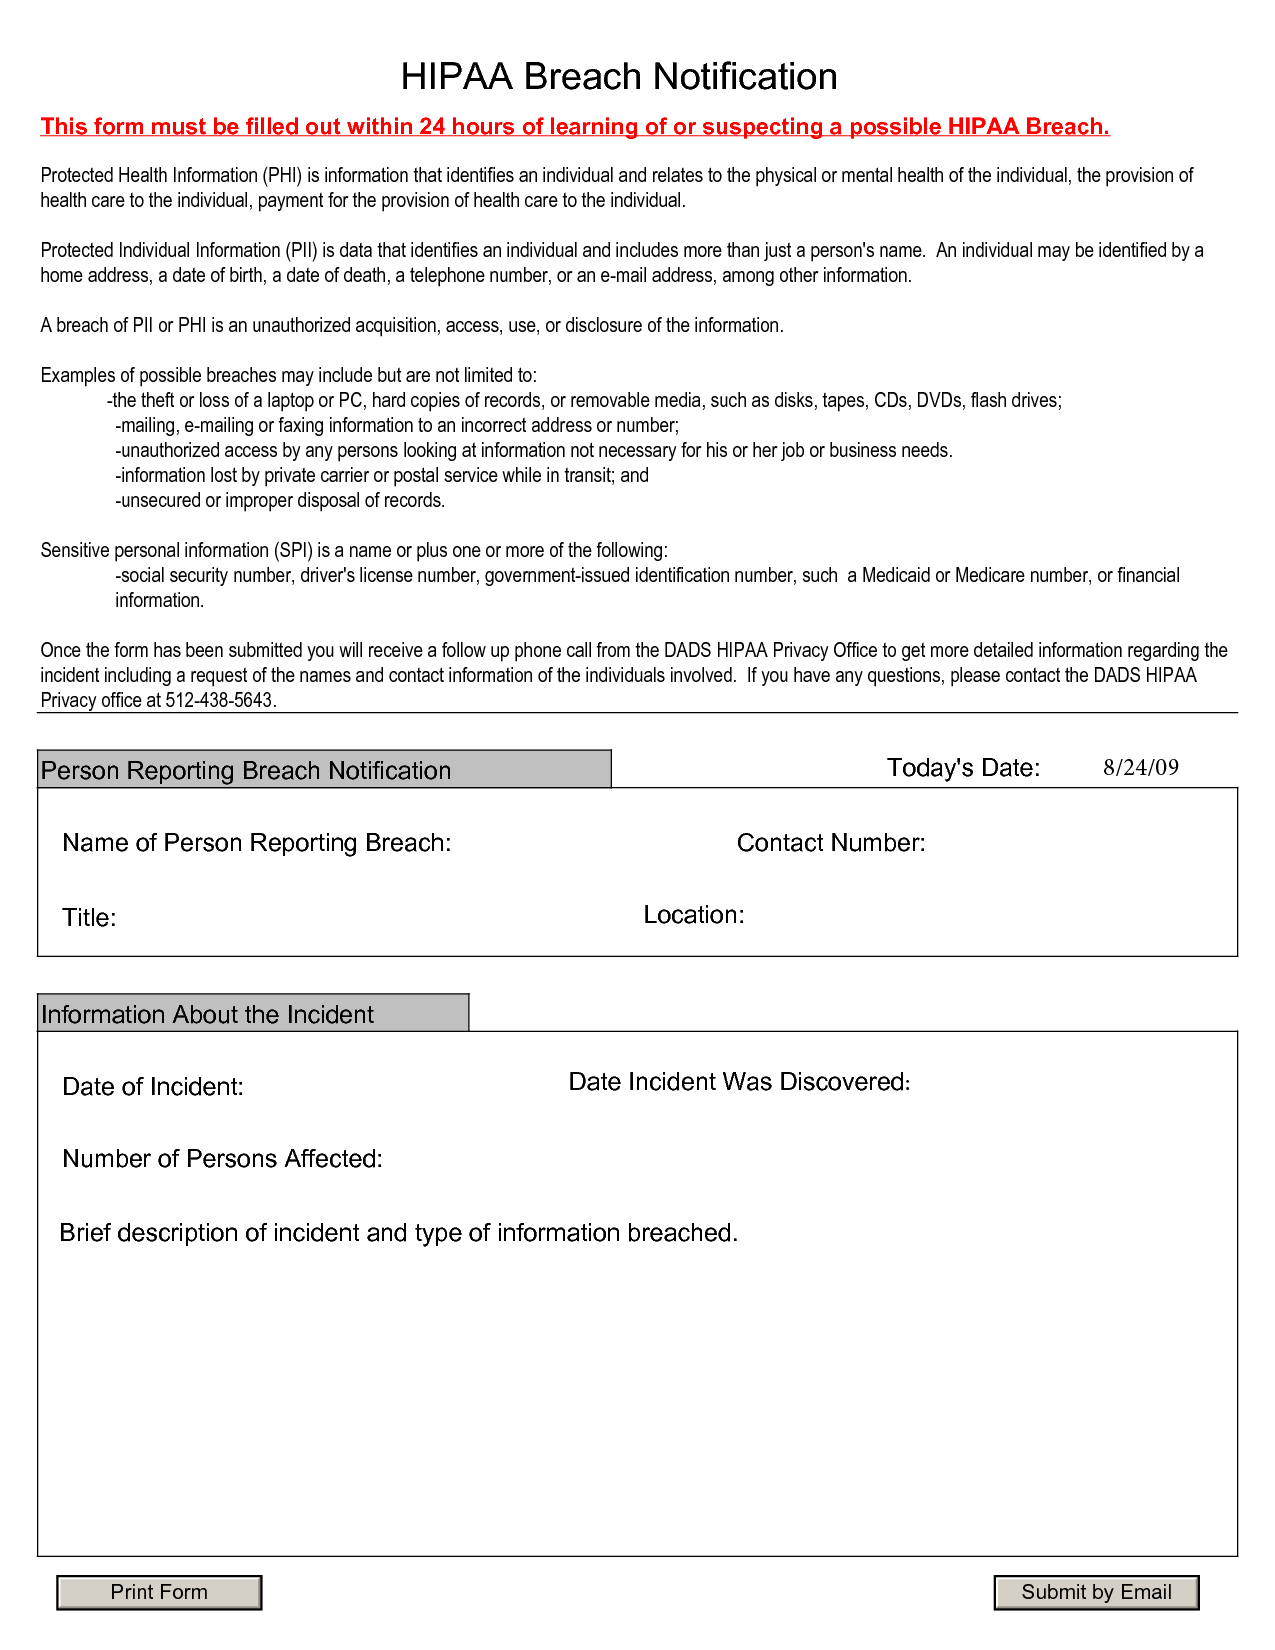 006 Hipaa Essay Example Breach Notification Letter Sample 933164 Archaicawful Full